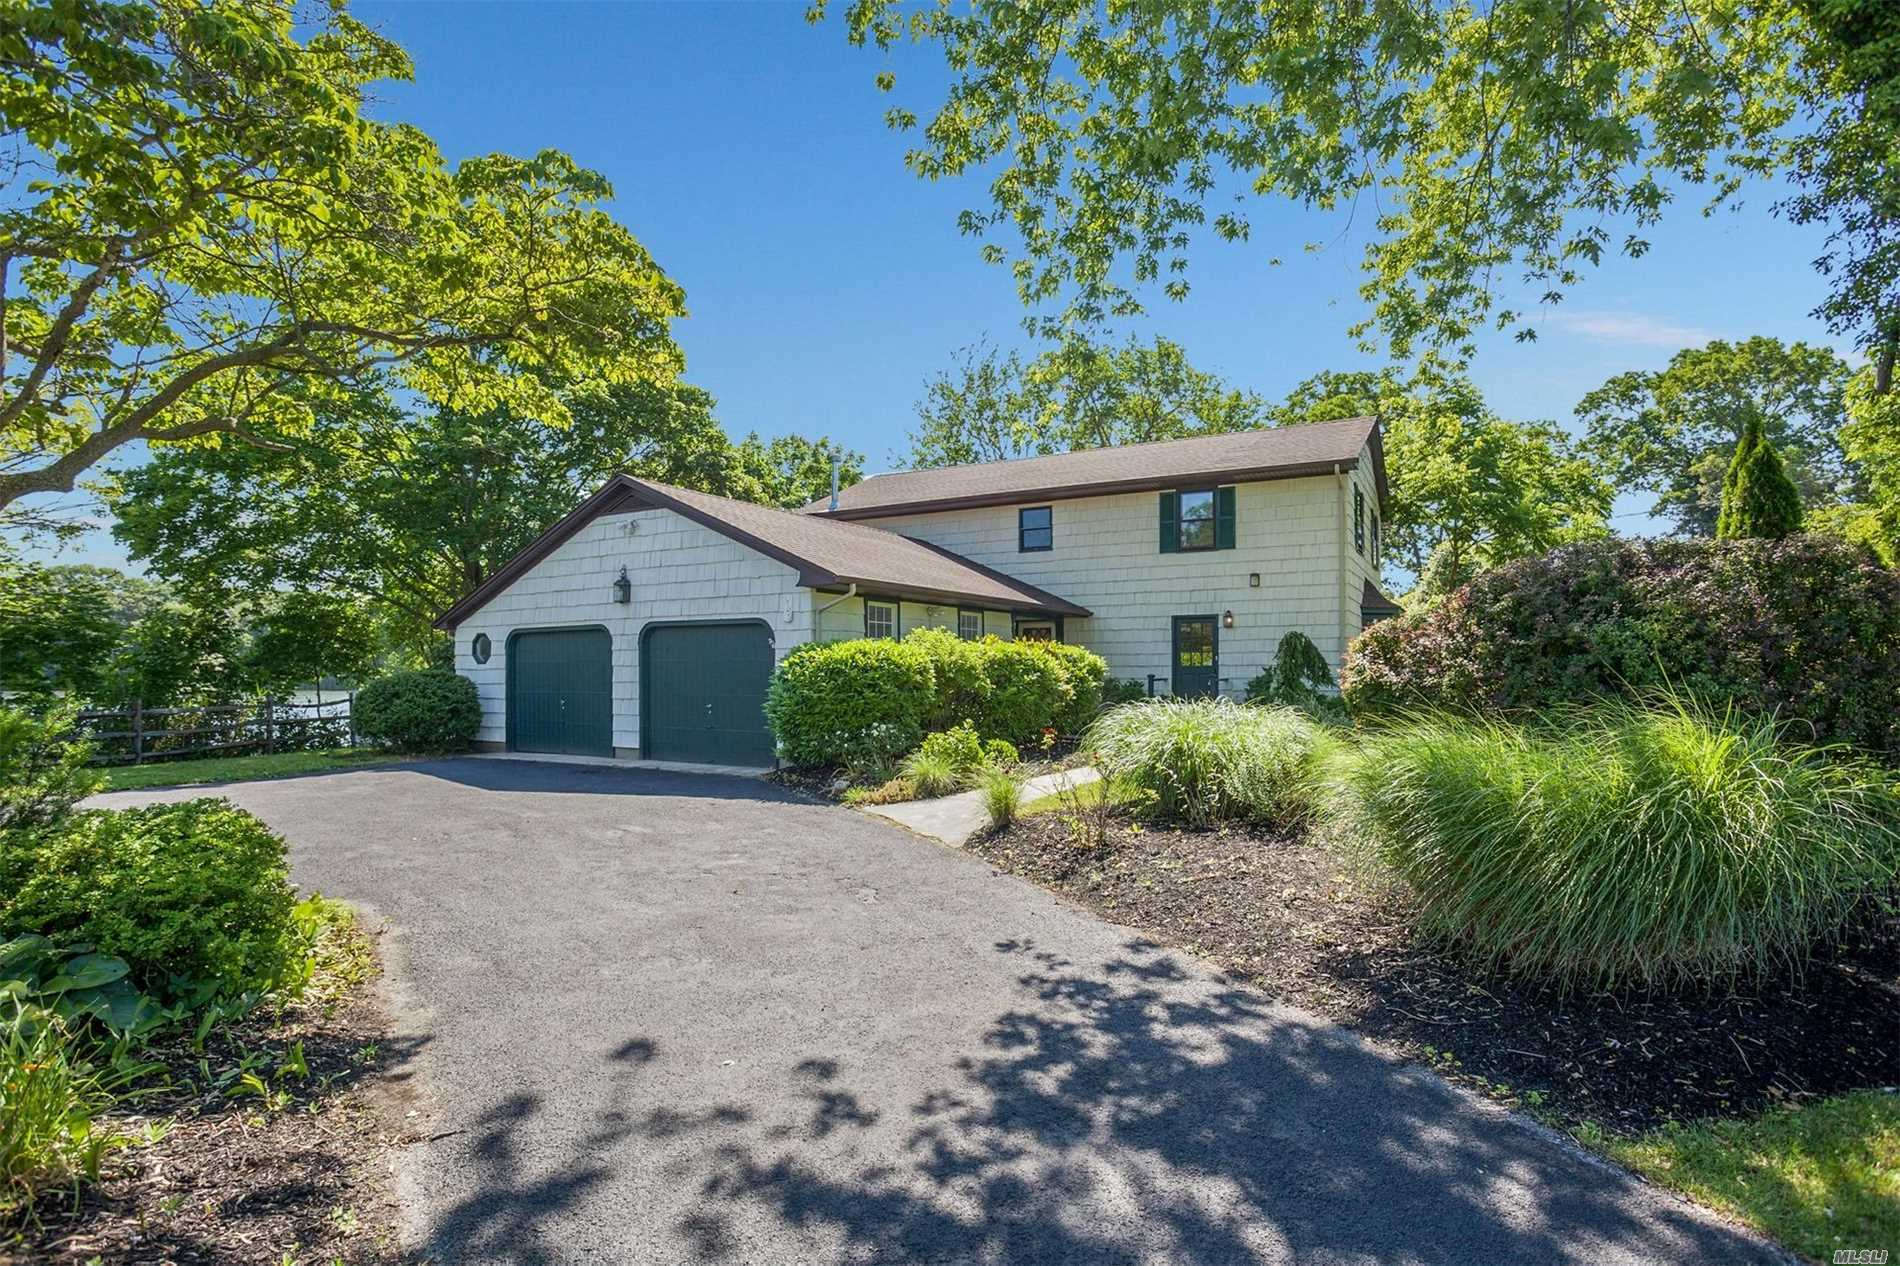 906 Pond View Rd - Riverhead, New York